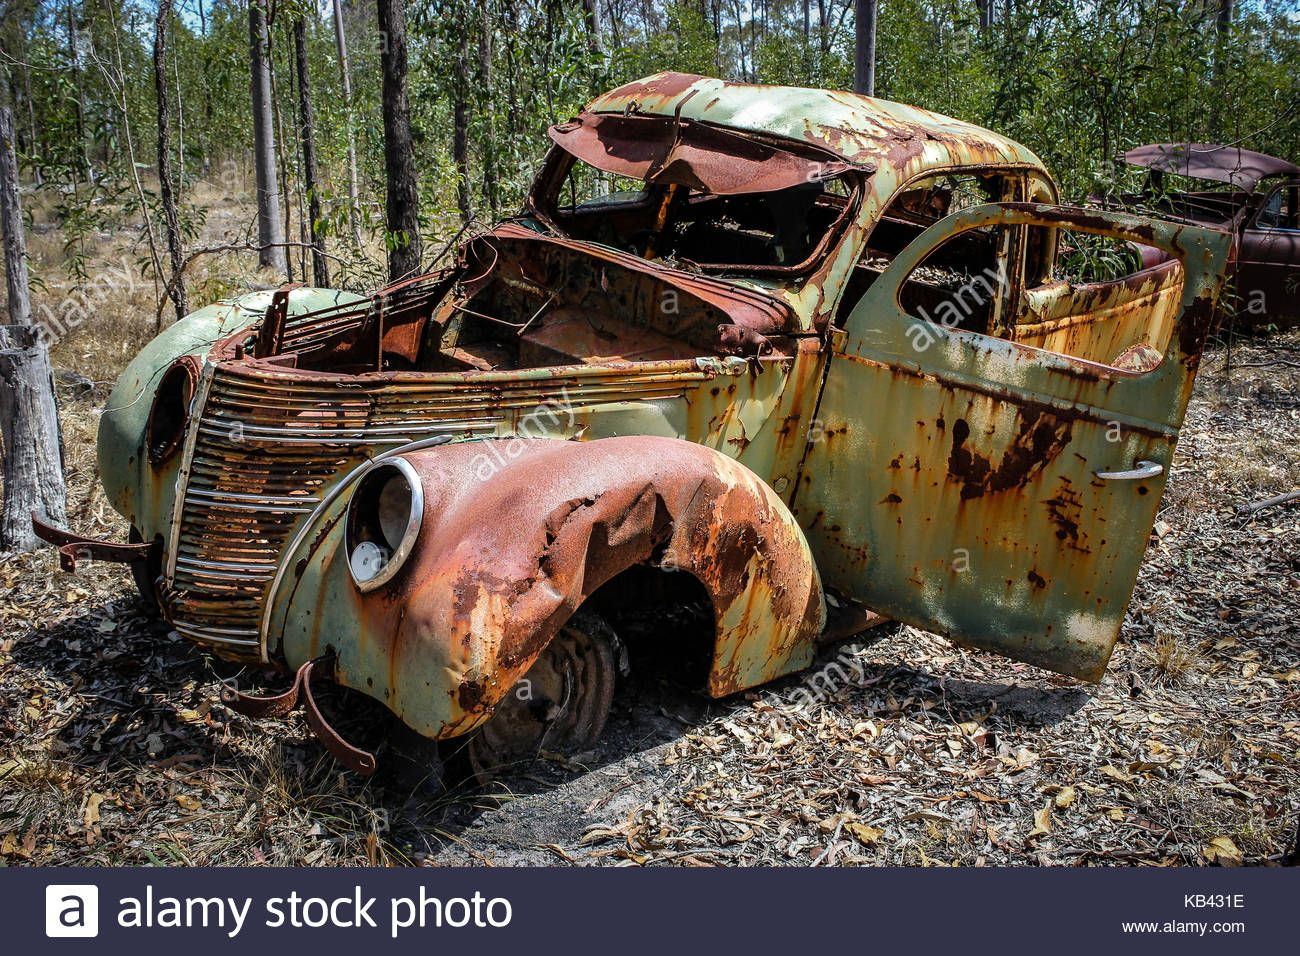 Vintage Rusty Car Abandoned In The Bush Australiastock Photo With